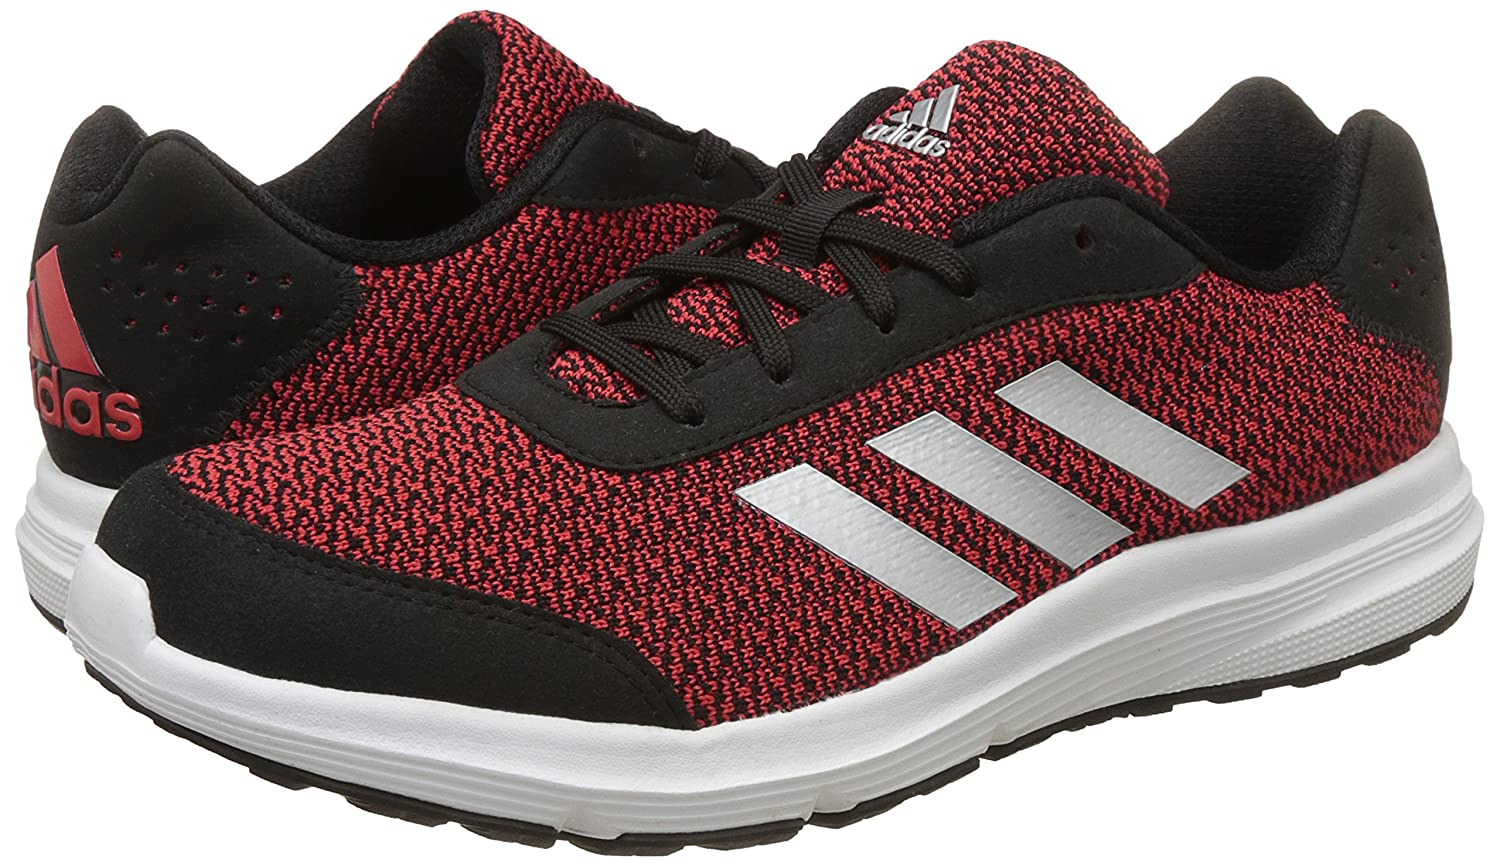 Cblack/Silvmt/Scarle Running Shoes